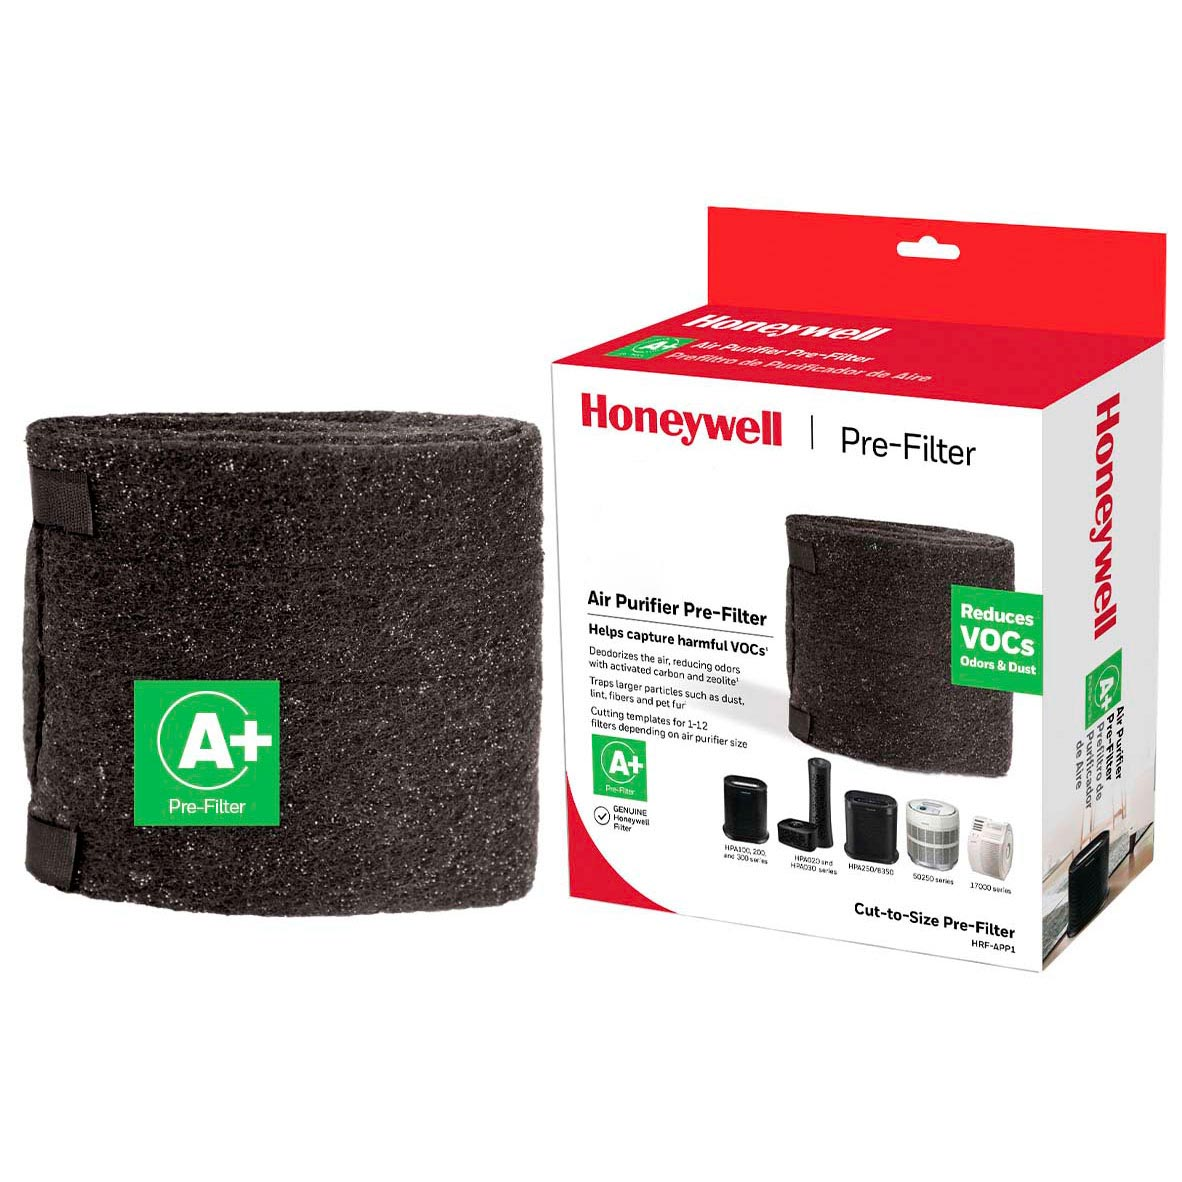 Honeywell Filter A Household Odor & Gas Reducing Universal Pre-filter, HRF-APP1